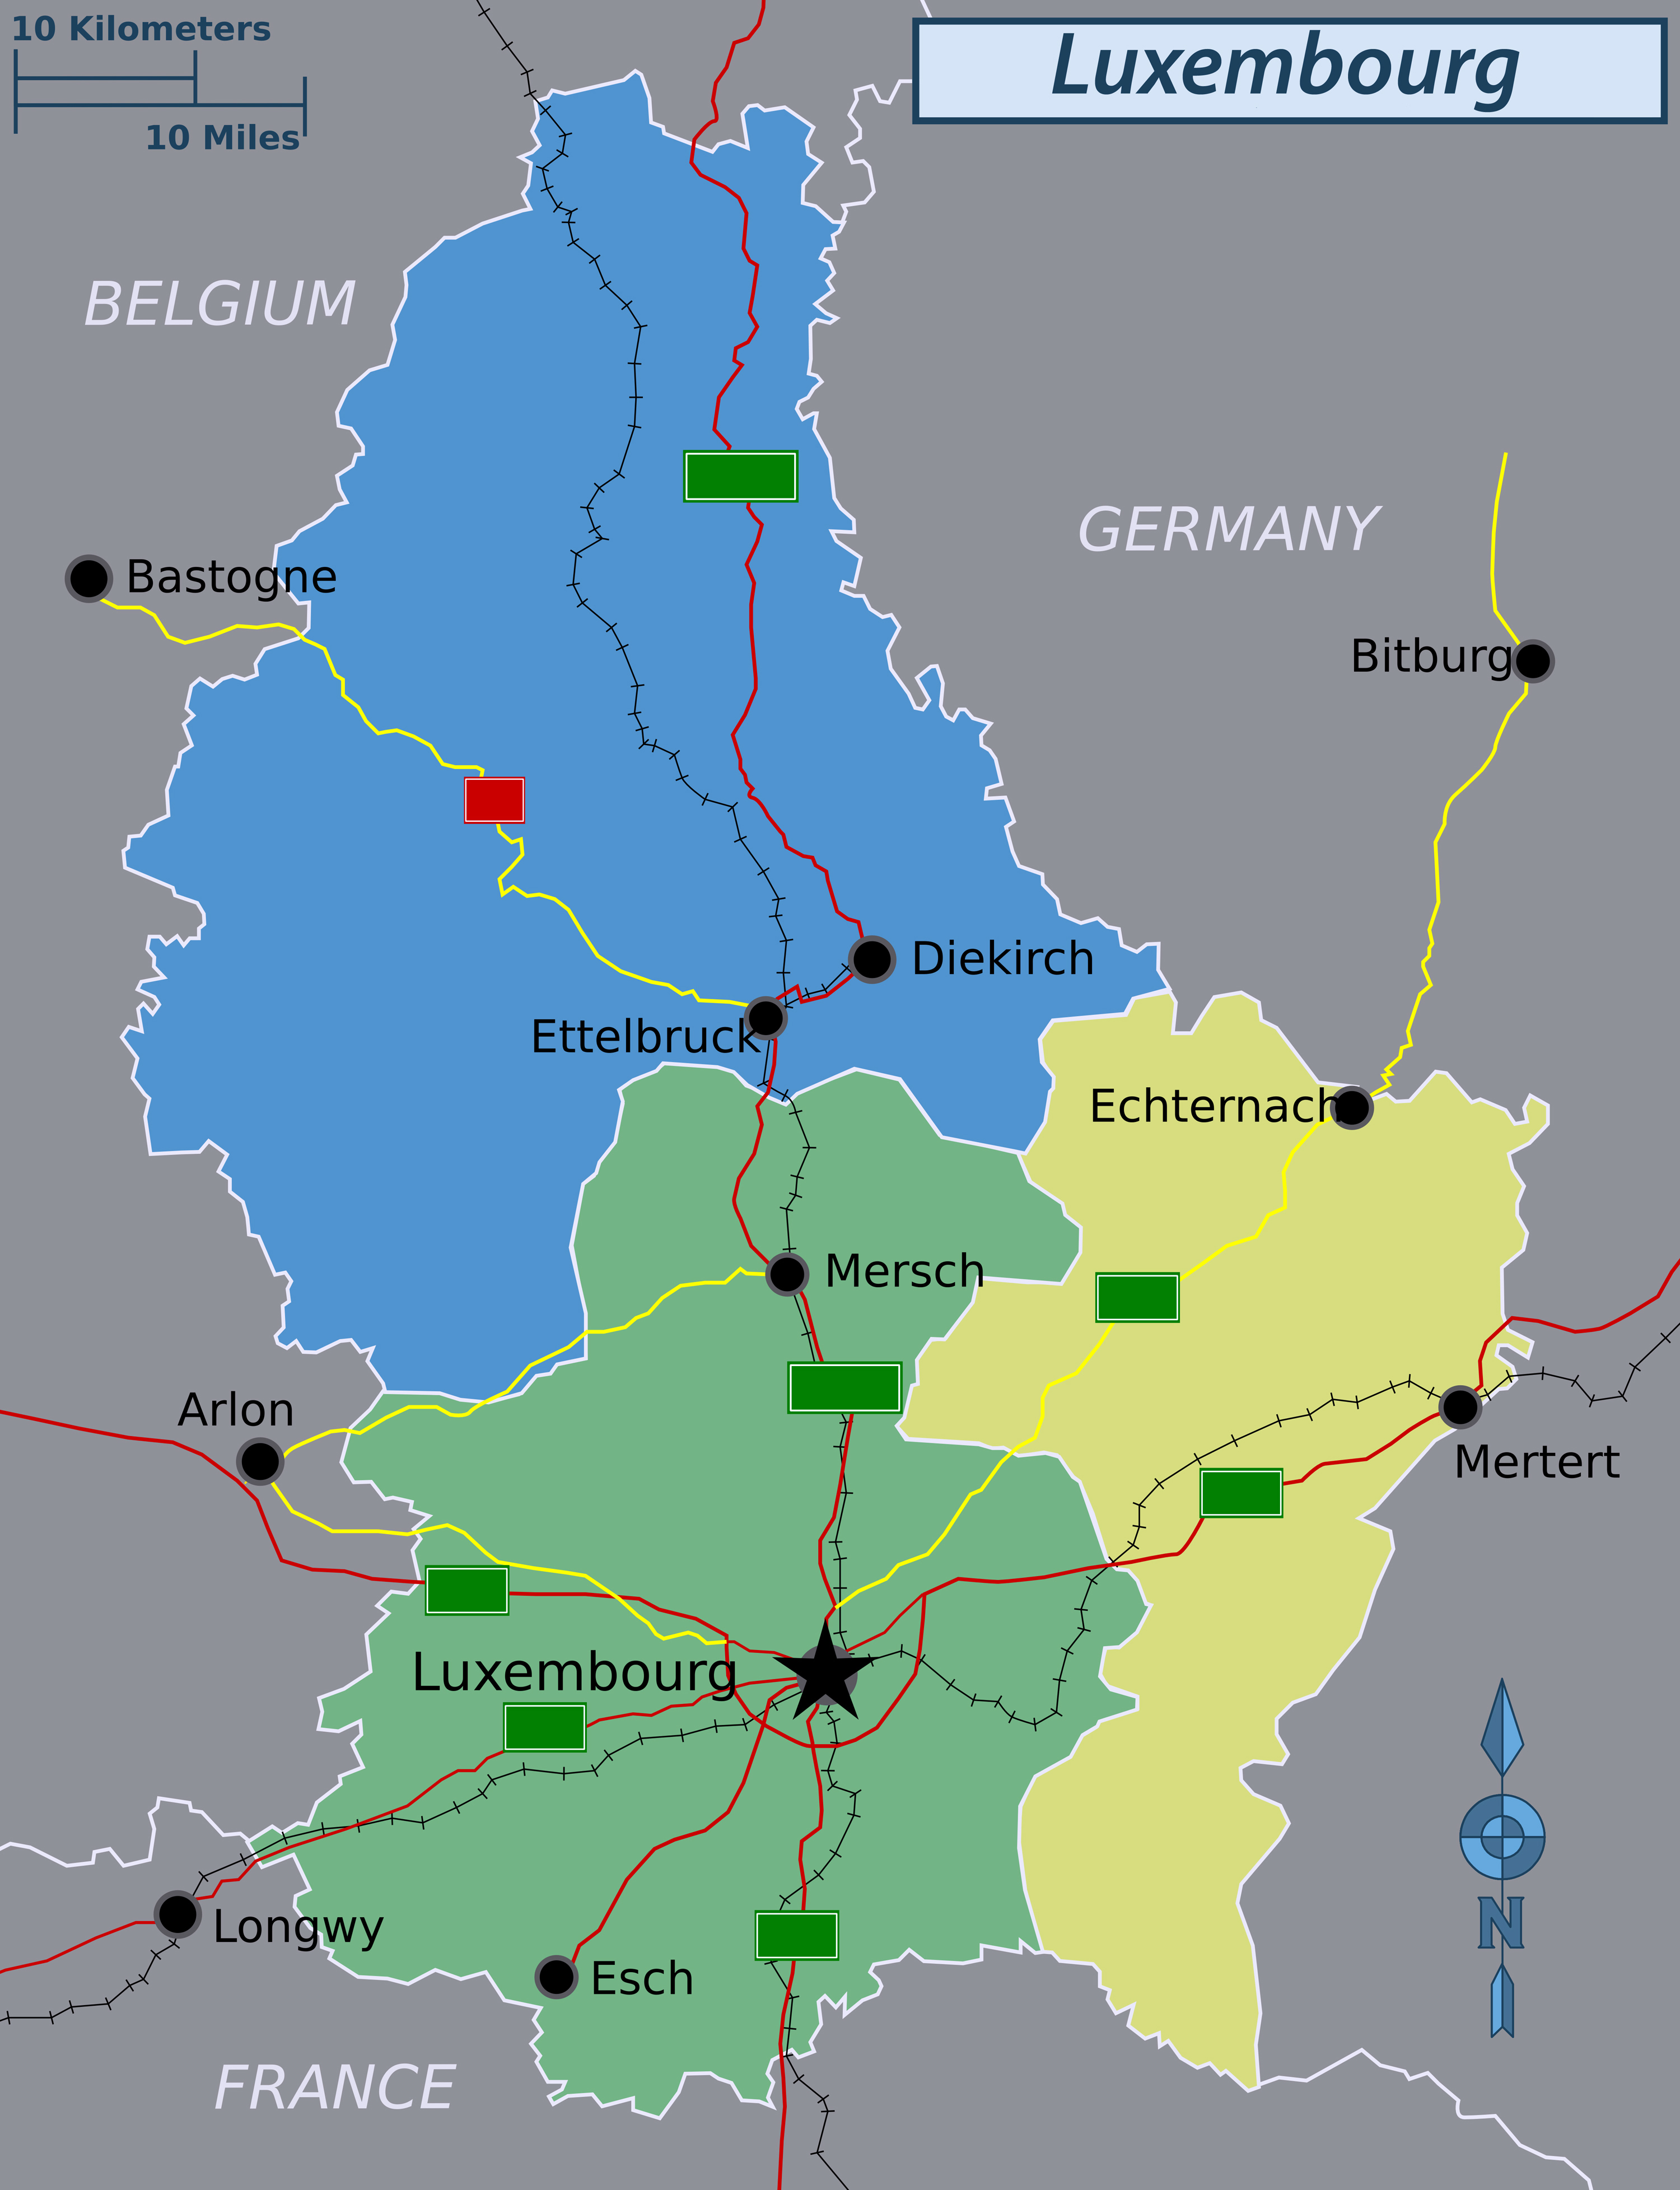 large regions map of luxembourg. large regions map of luxembourg  luxembourg  europe  mapsland